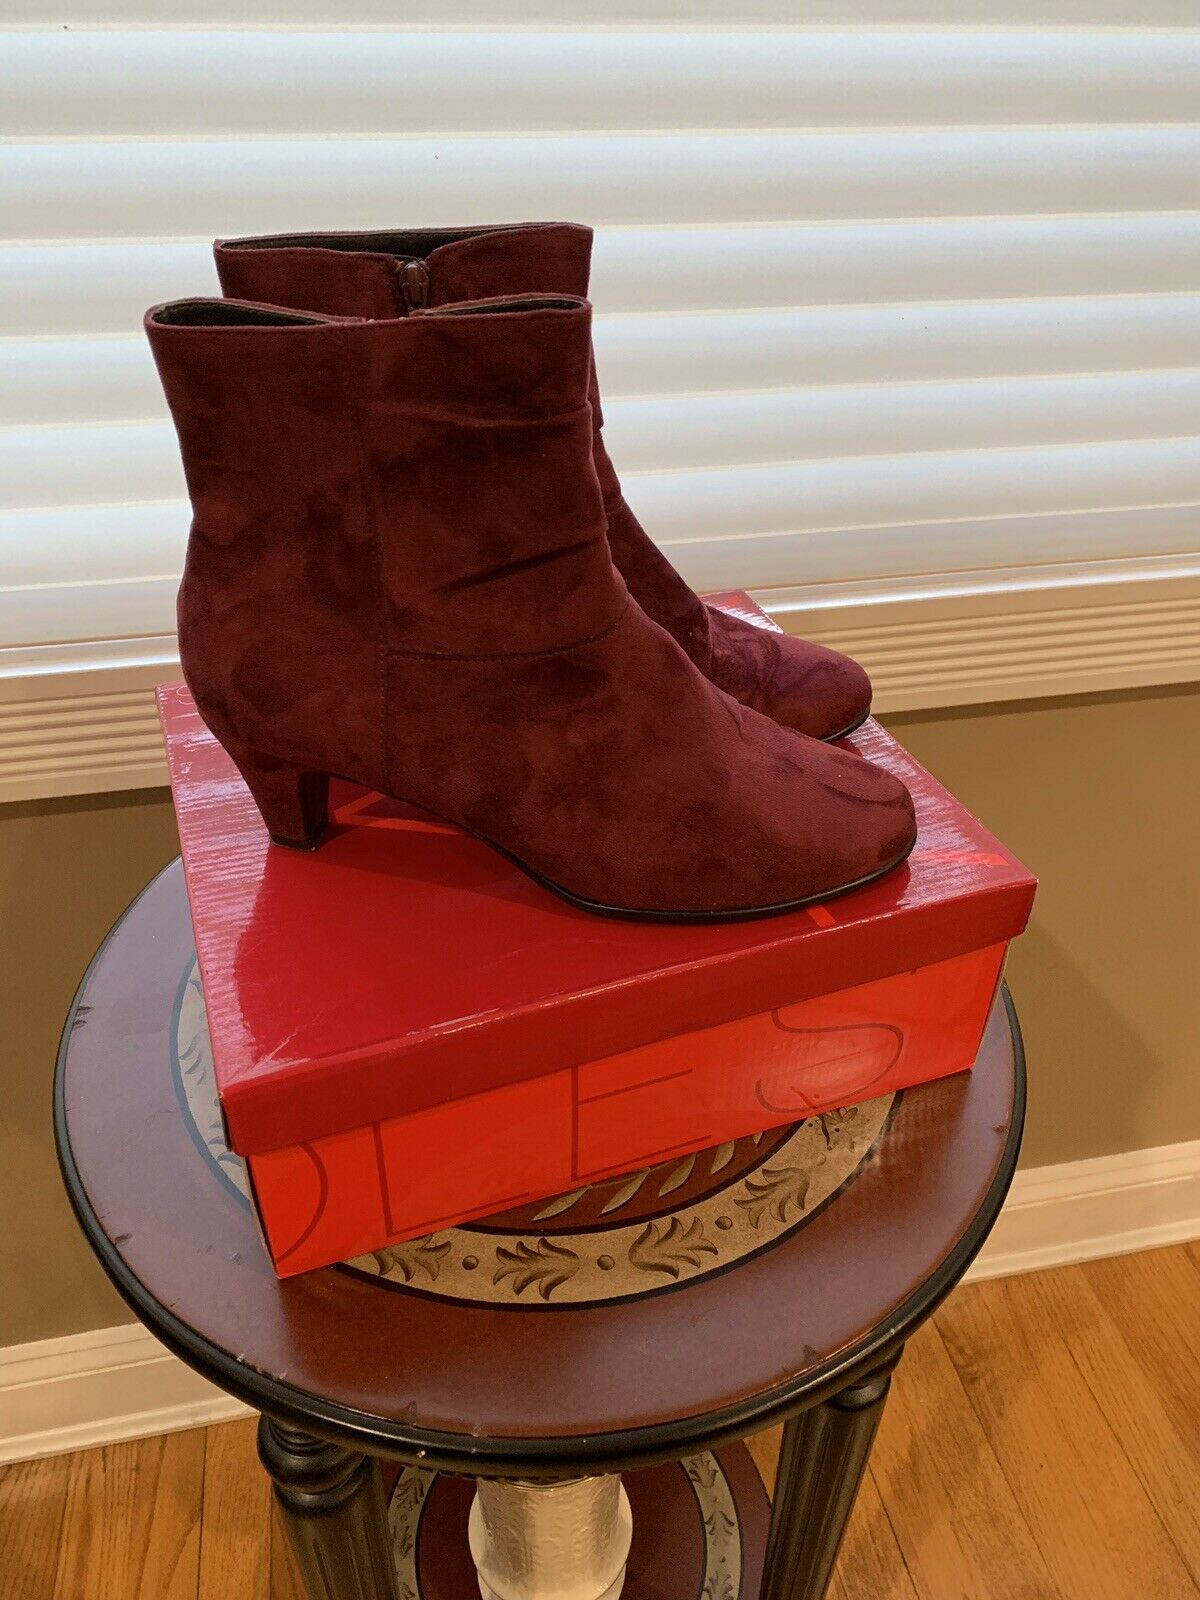 Aerosole Red light Wine colord Bootie (authentic Womens ankle boots.) W-10 Wide